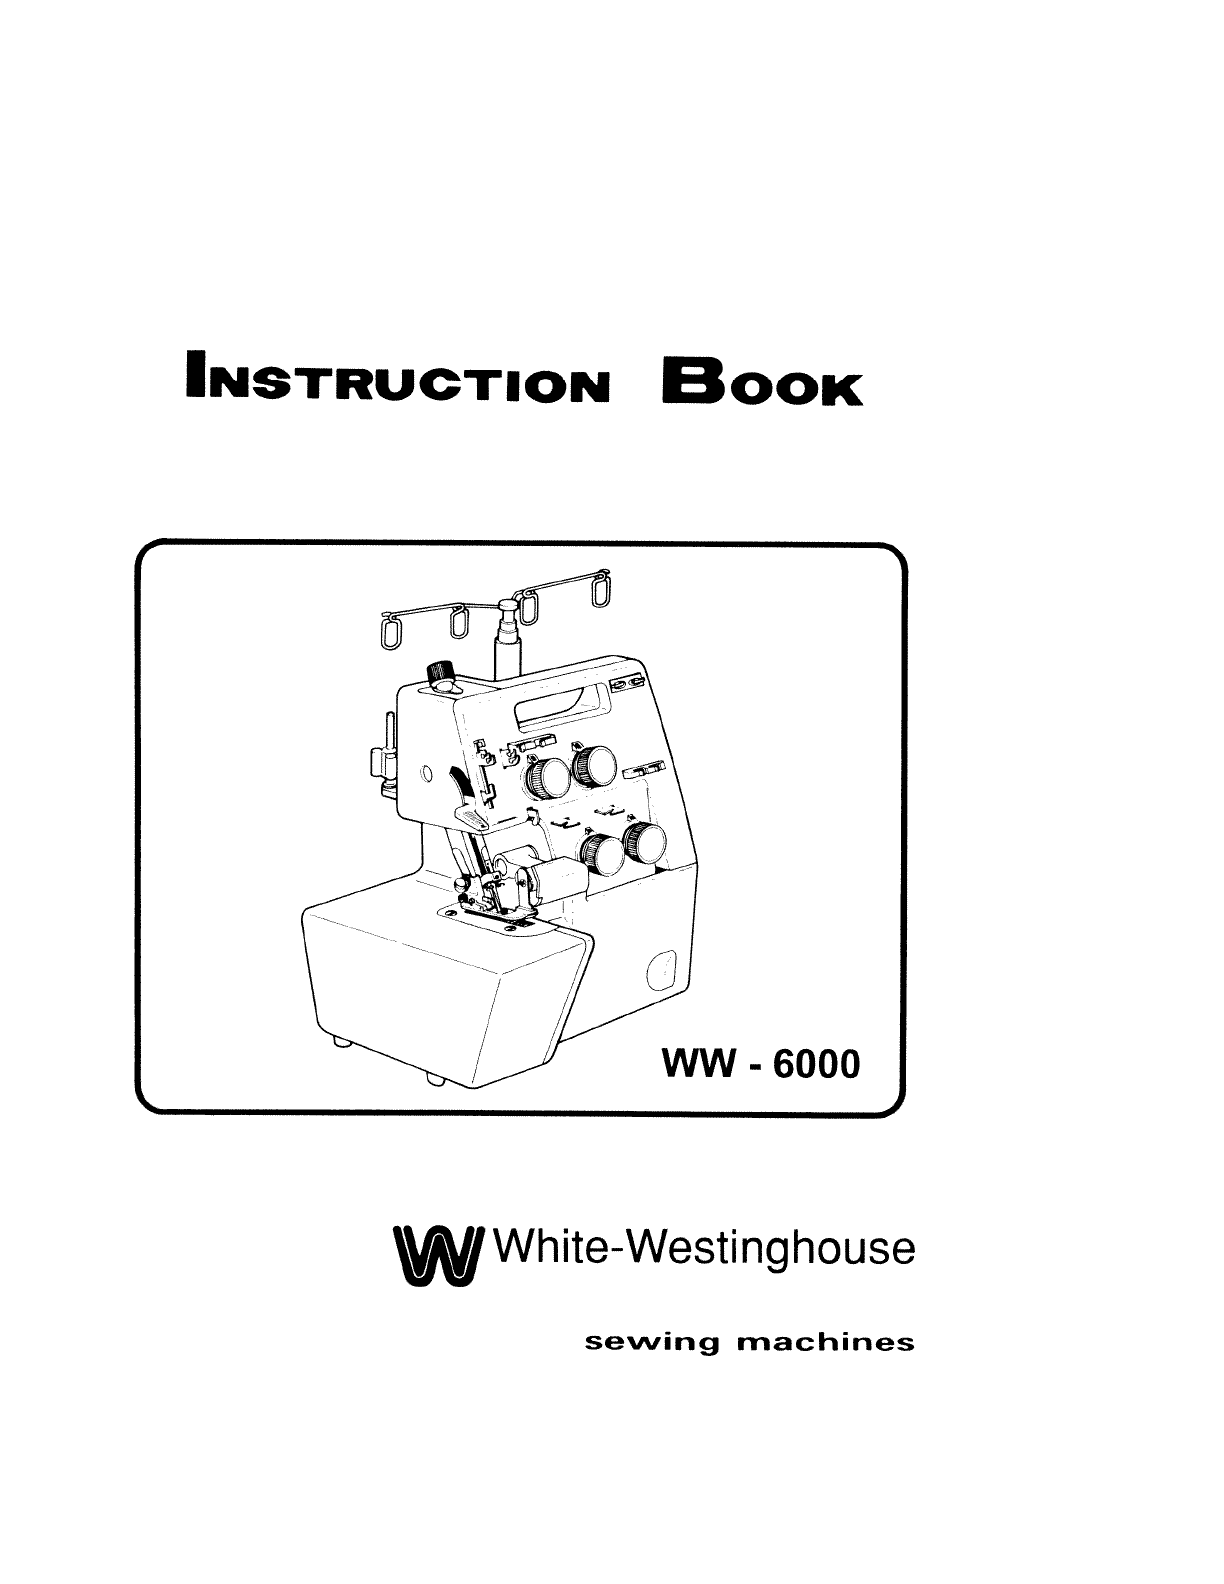 White-Westinghouse Sewing Machine WW-6000 User Guide